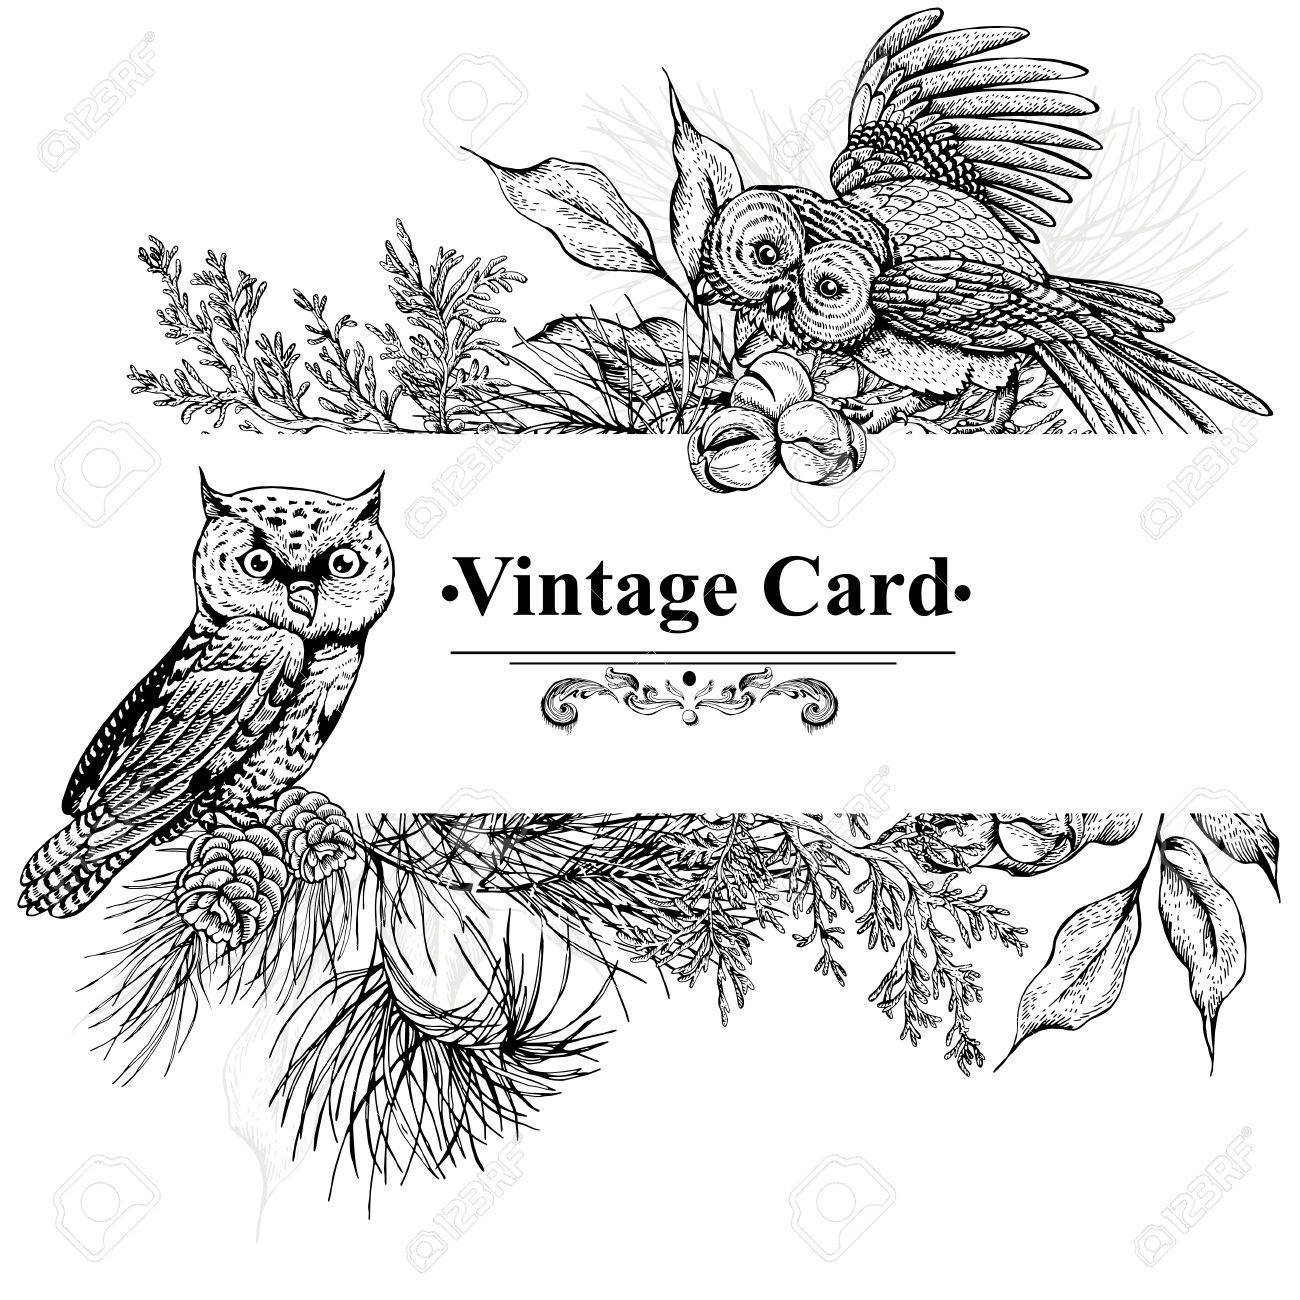 1300x1300 Monochrome Vintage Greeting Card With Owls, Spruce Branches